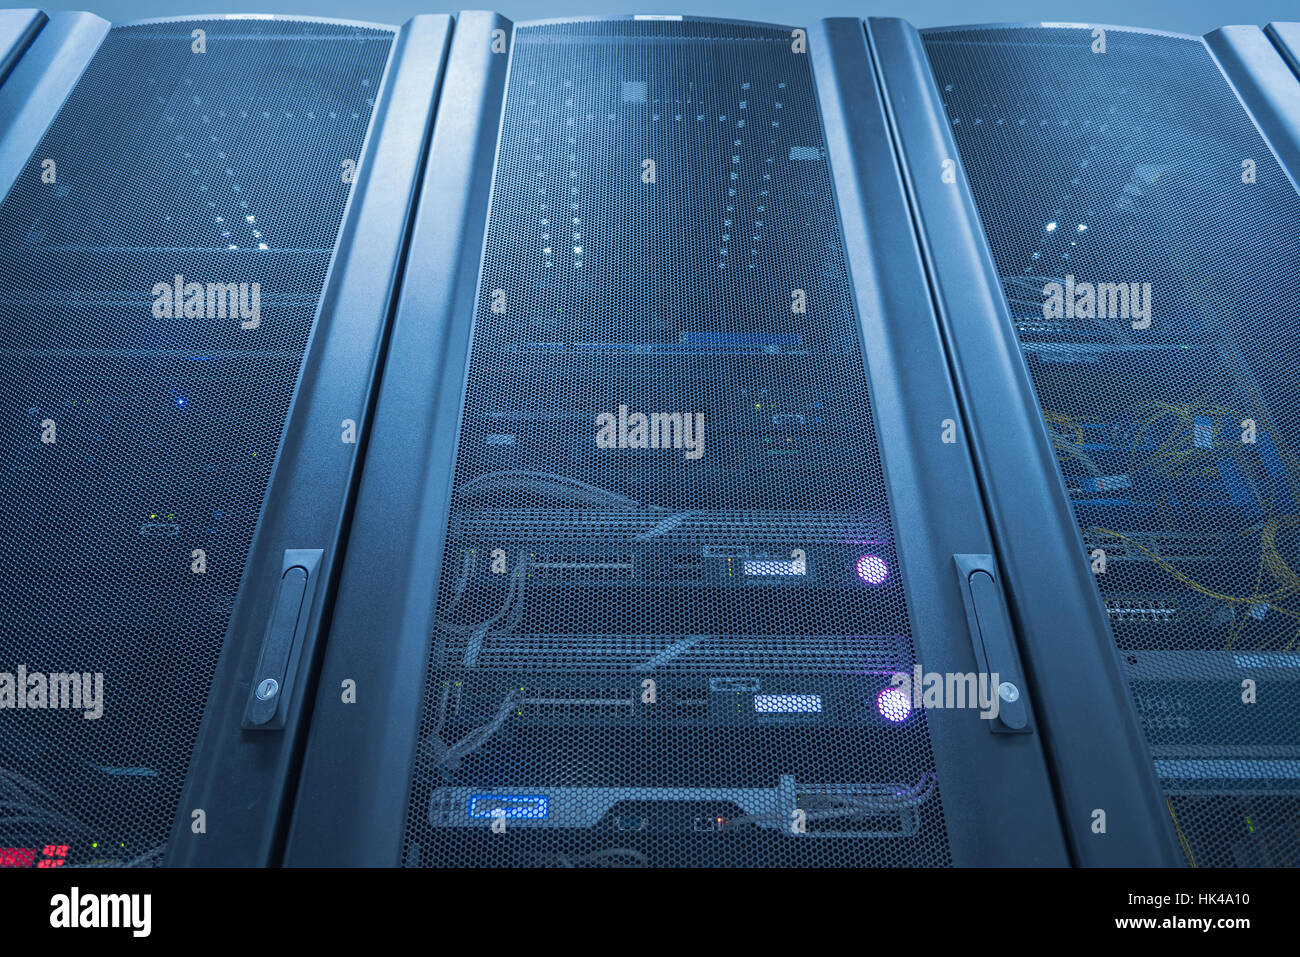 Server Rack With LED Indictor Inside - Stock Image